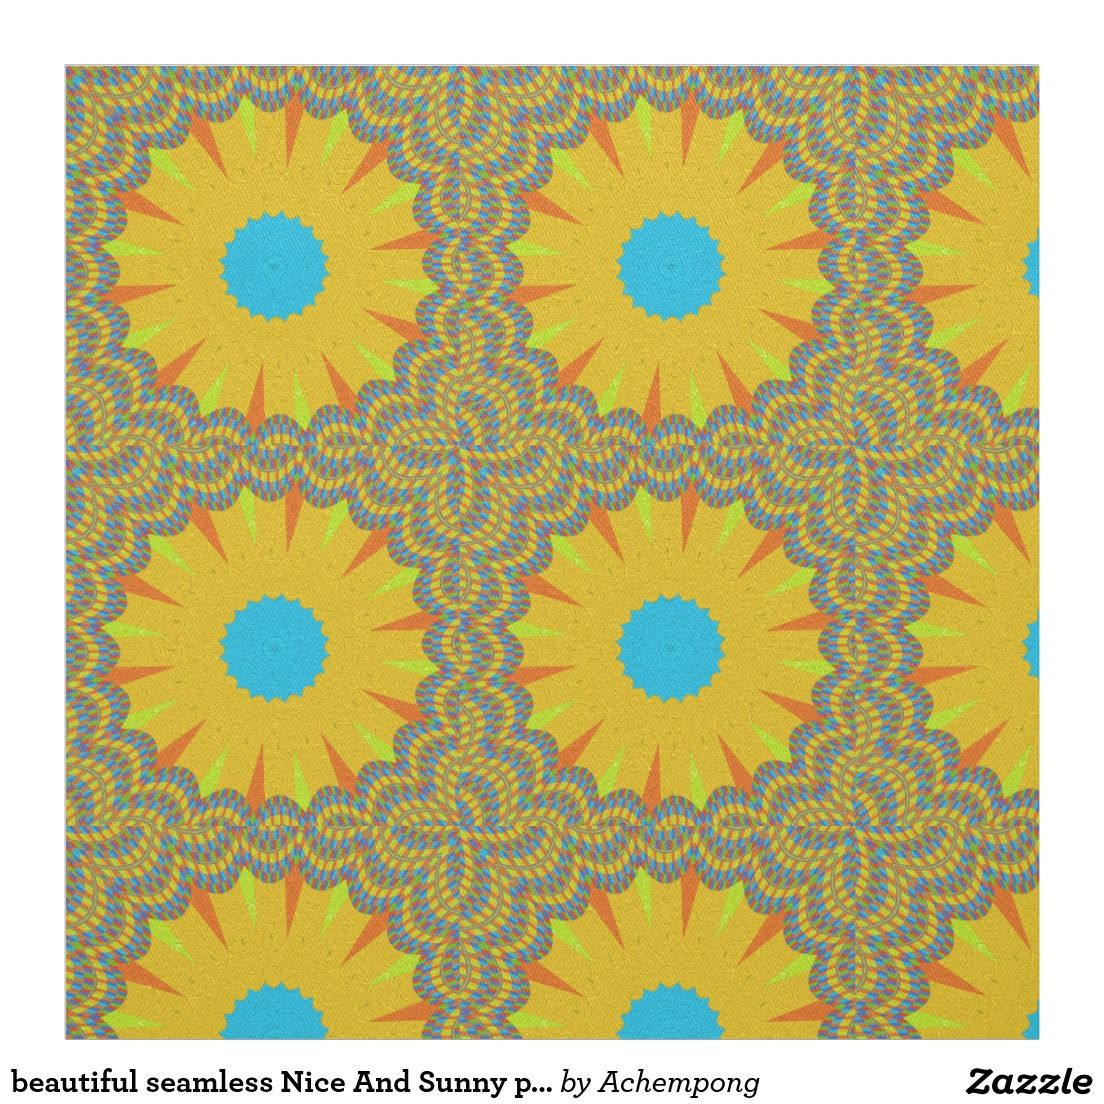 Create your own designs amp sell your design online shirts zazzle - Beautiful Seamless Nice And Sunny Pattern Design Hakuna Matata Amazing Beautiful Stuff Products Sold On Zazzle Achempong Online Store Fo